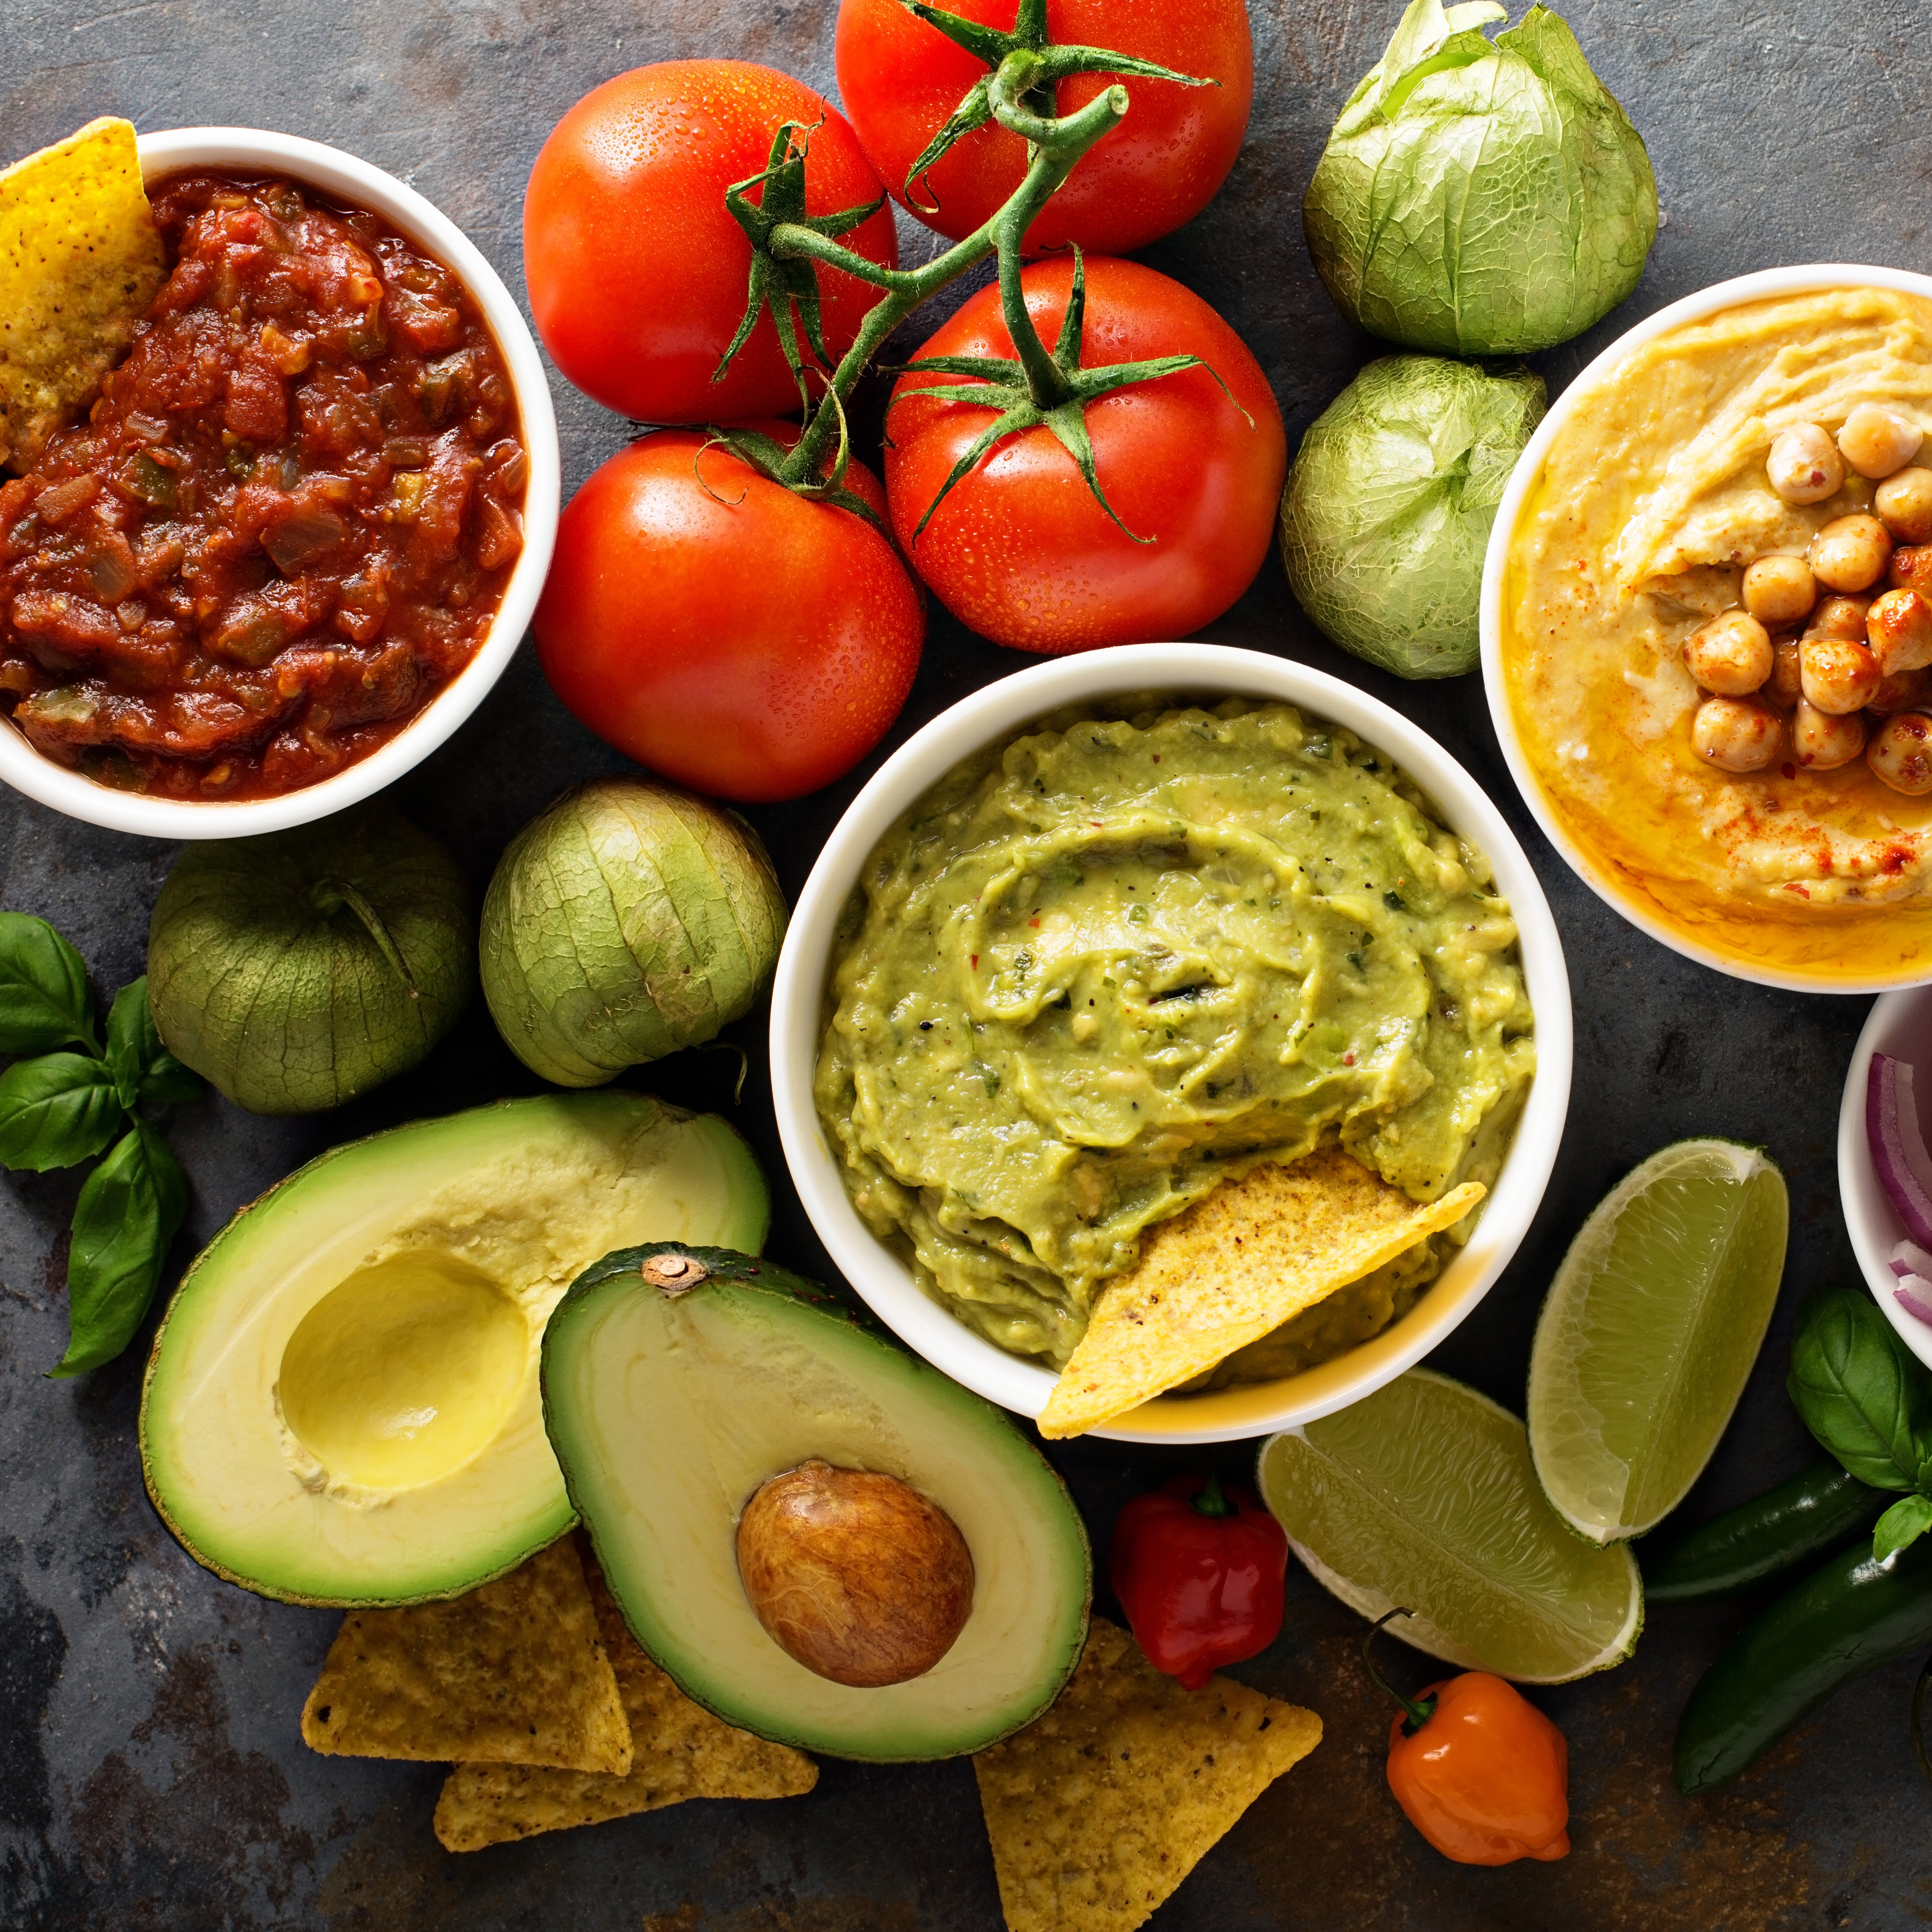 Sauces, Spreads & Dips